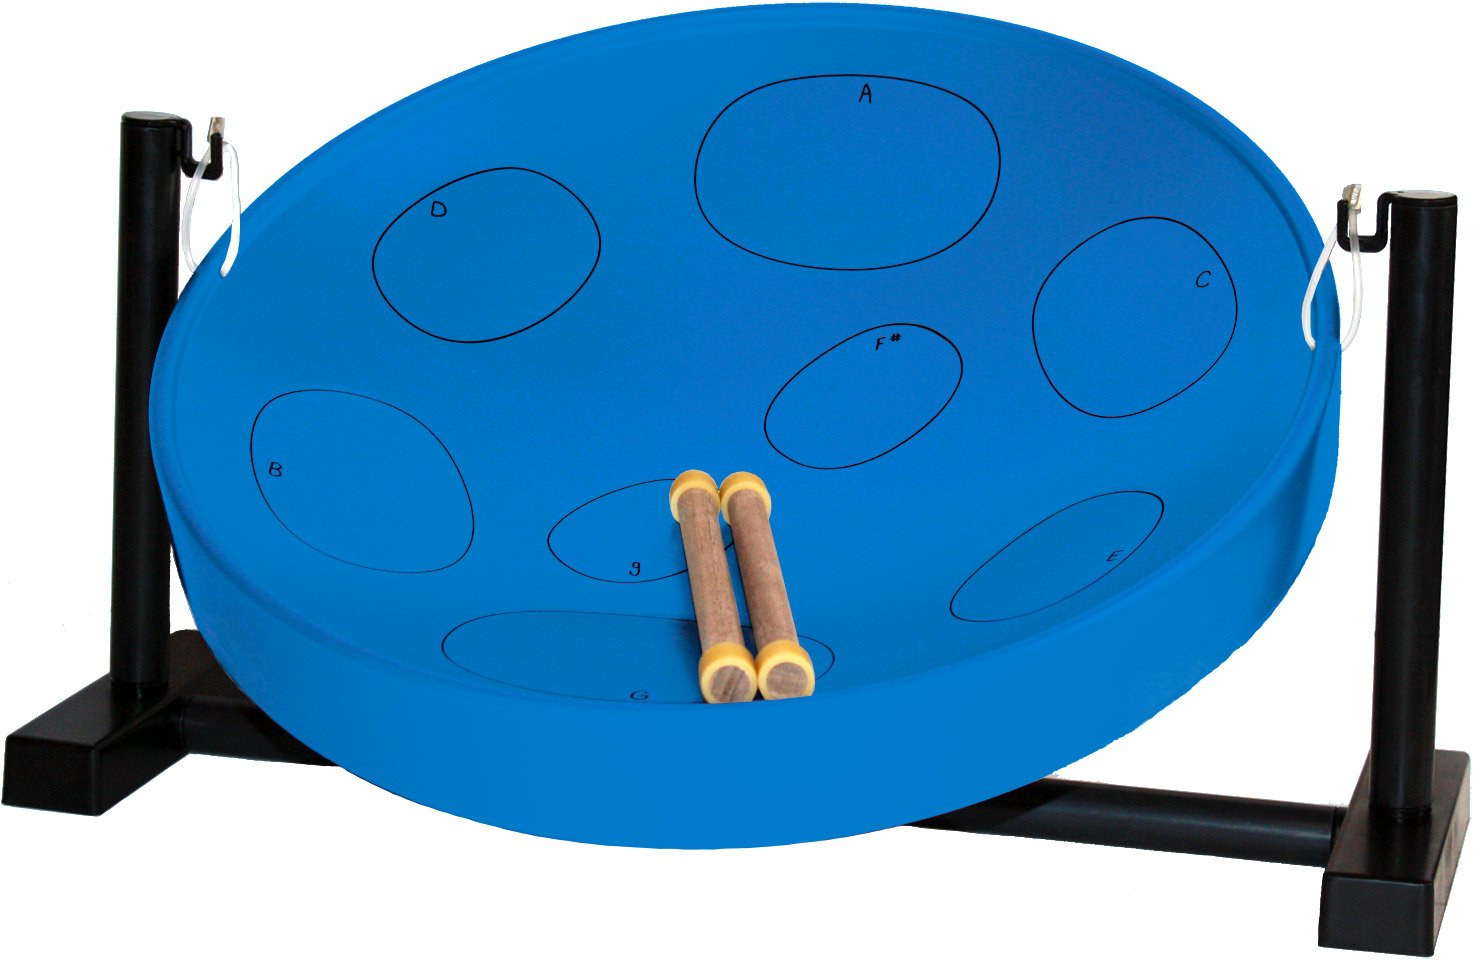 Panyard Jumbie Jam Steel Ready to Play Kit-Blue G-Major with Table Top Stand-Made in USA Authentic Pan, 16-inch (W1085) by Panyard